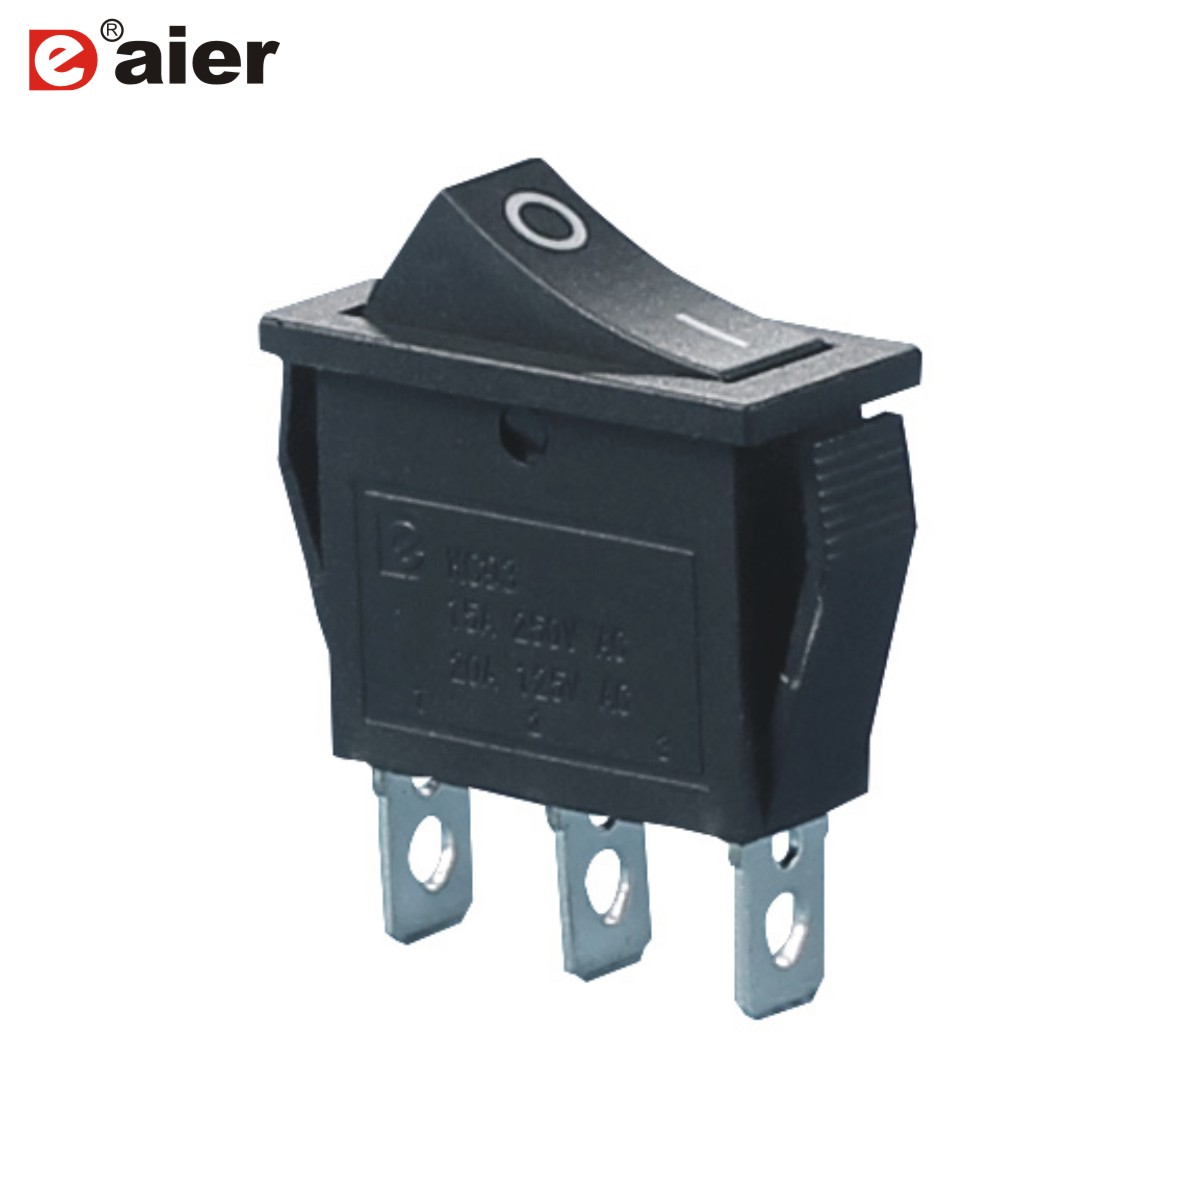 5pcs on on 3 pins 2 position rocker switch t105 250v 15 amp spdt 10 28mm 20a 125vac switches single pole without light [ 1180 x 1180 Pixel ]